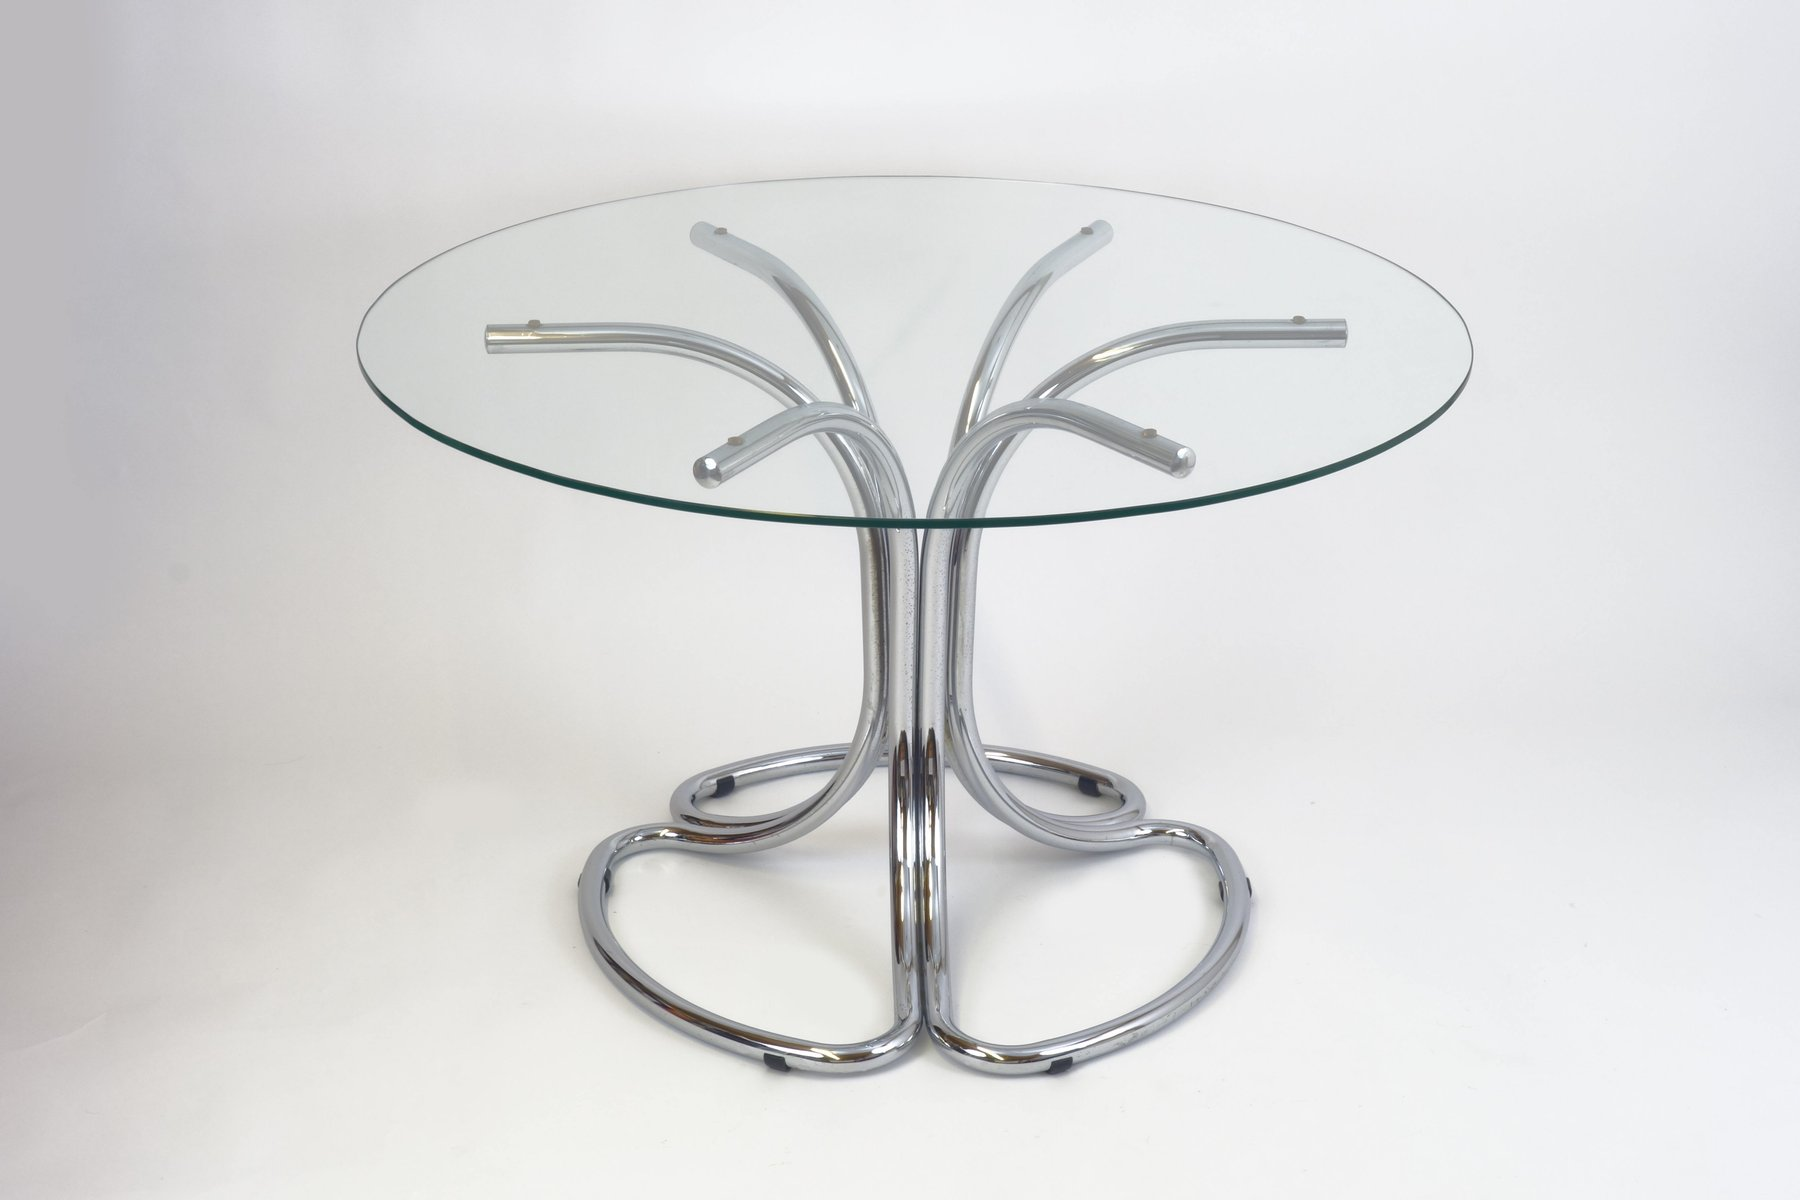 Home plisset italian designs clear glass dining table with aldo faux - Italian Vintage Dining Table With Round Glass Top 1970s For